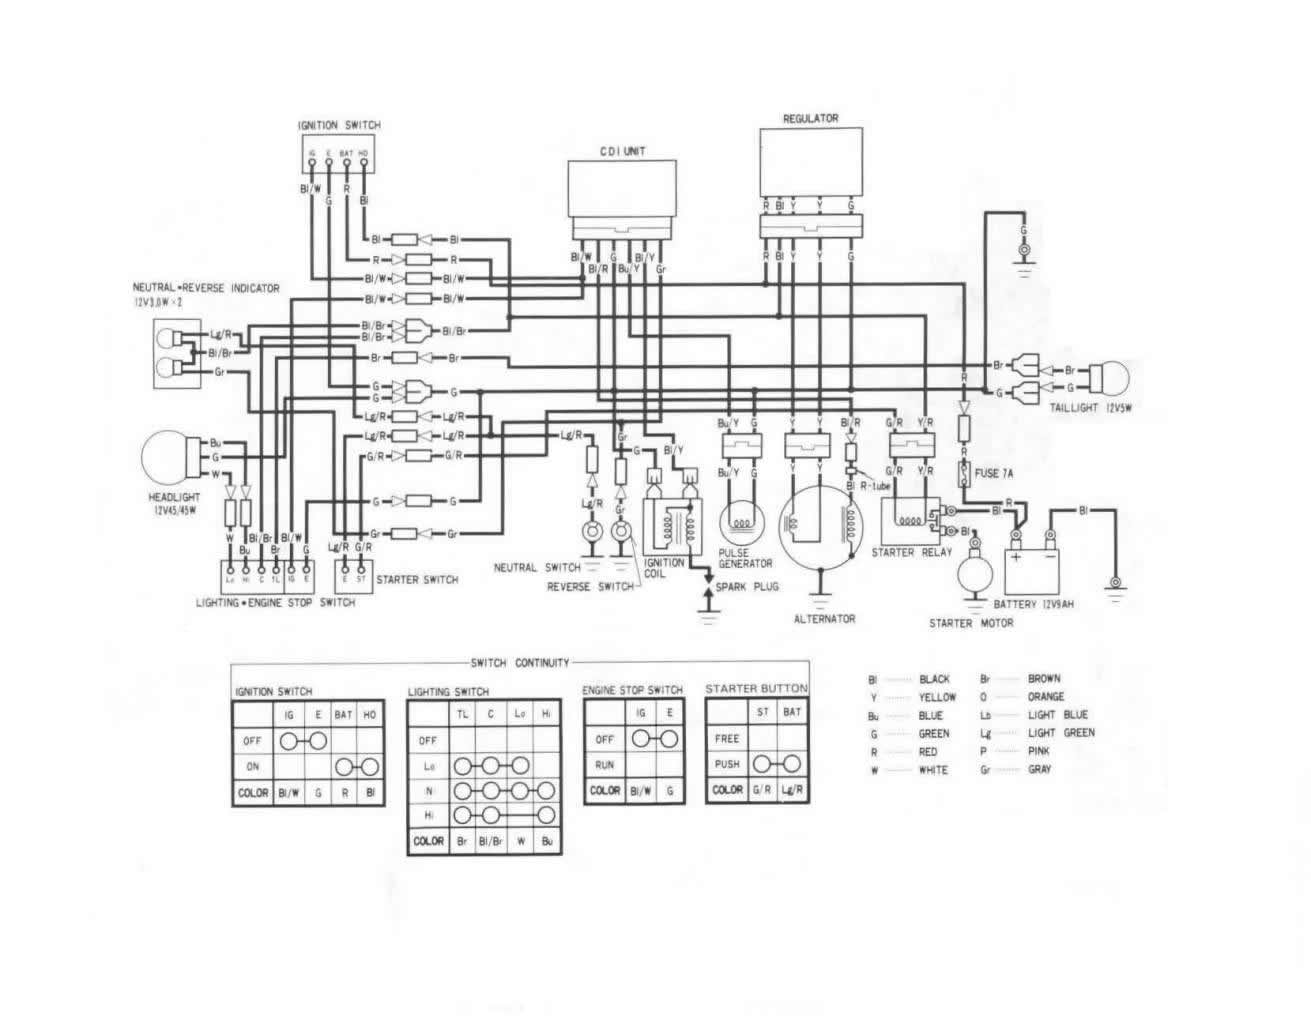 Honda 350 Rancher Battery Wiring - All Diagram Schematics on